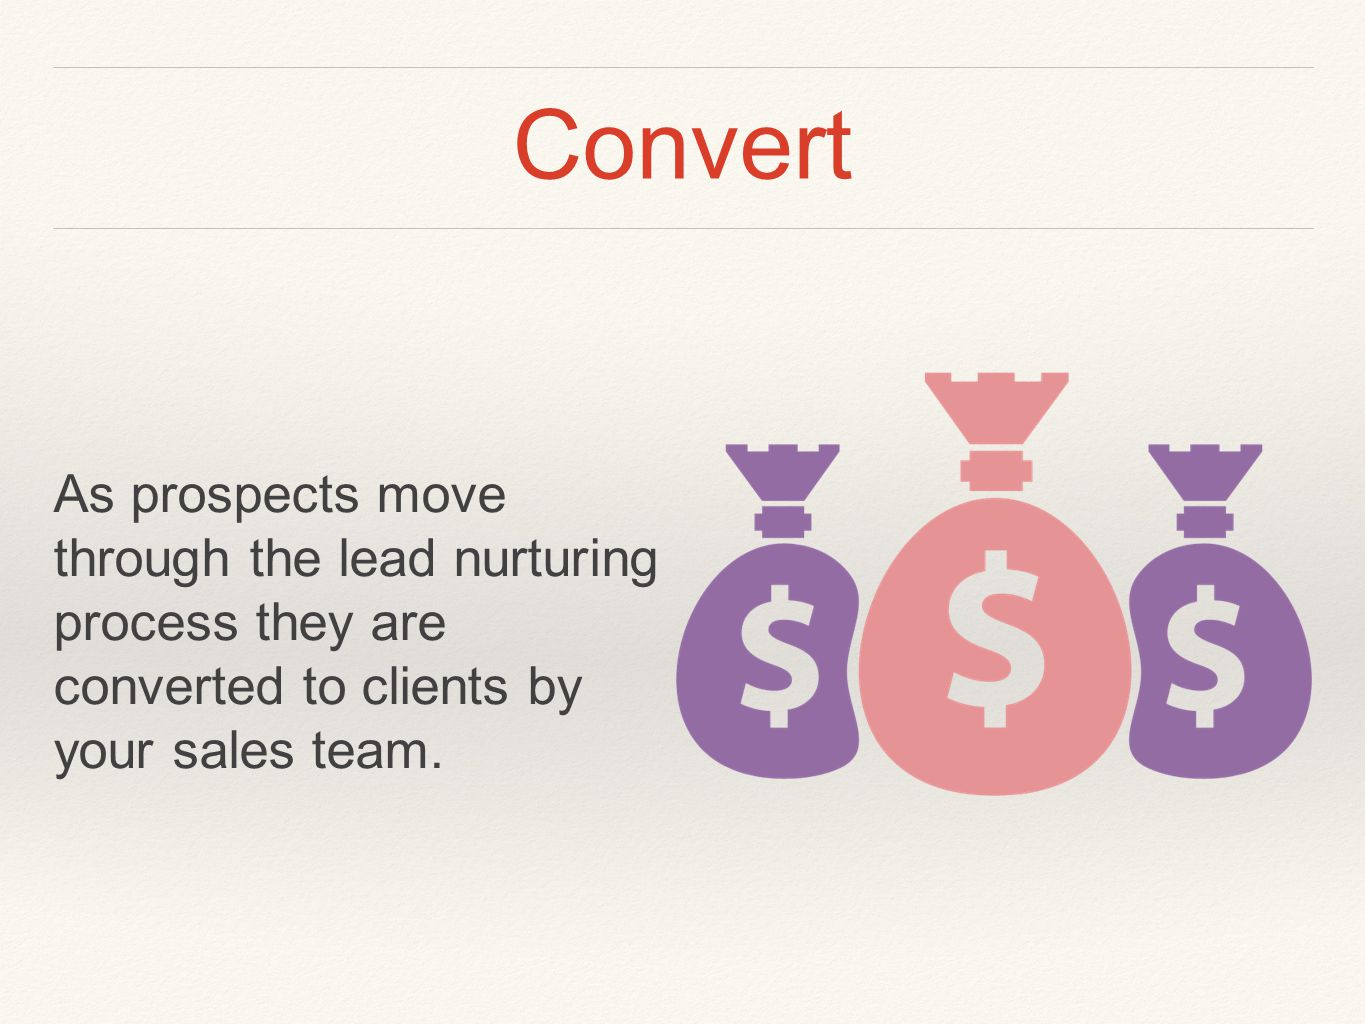 Convert As prospects move through the lead nurturing process they are converted to clients by your sales team.